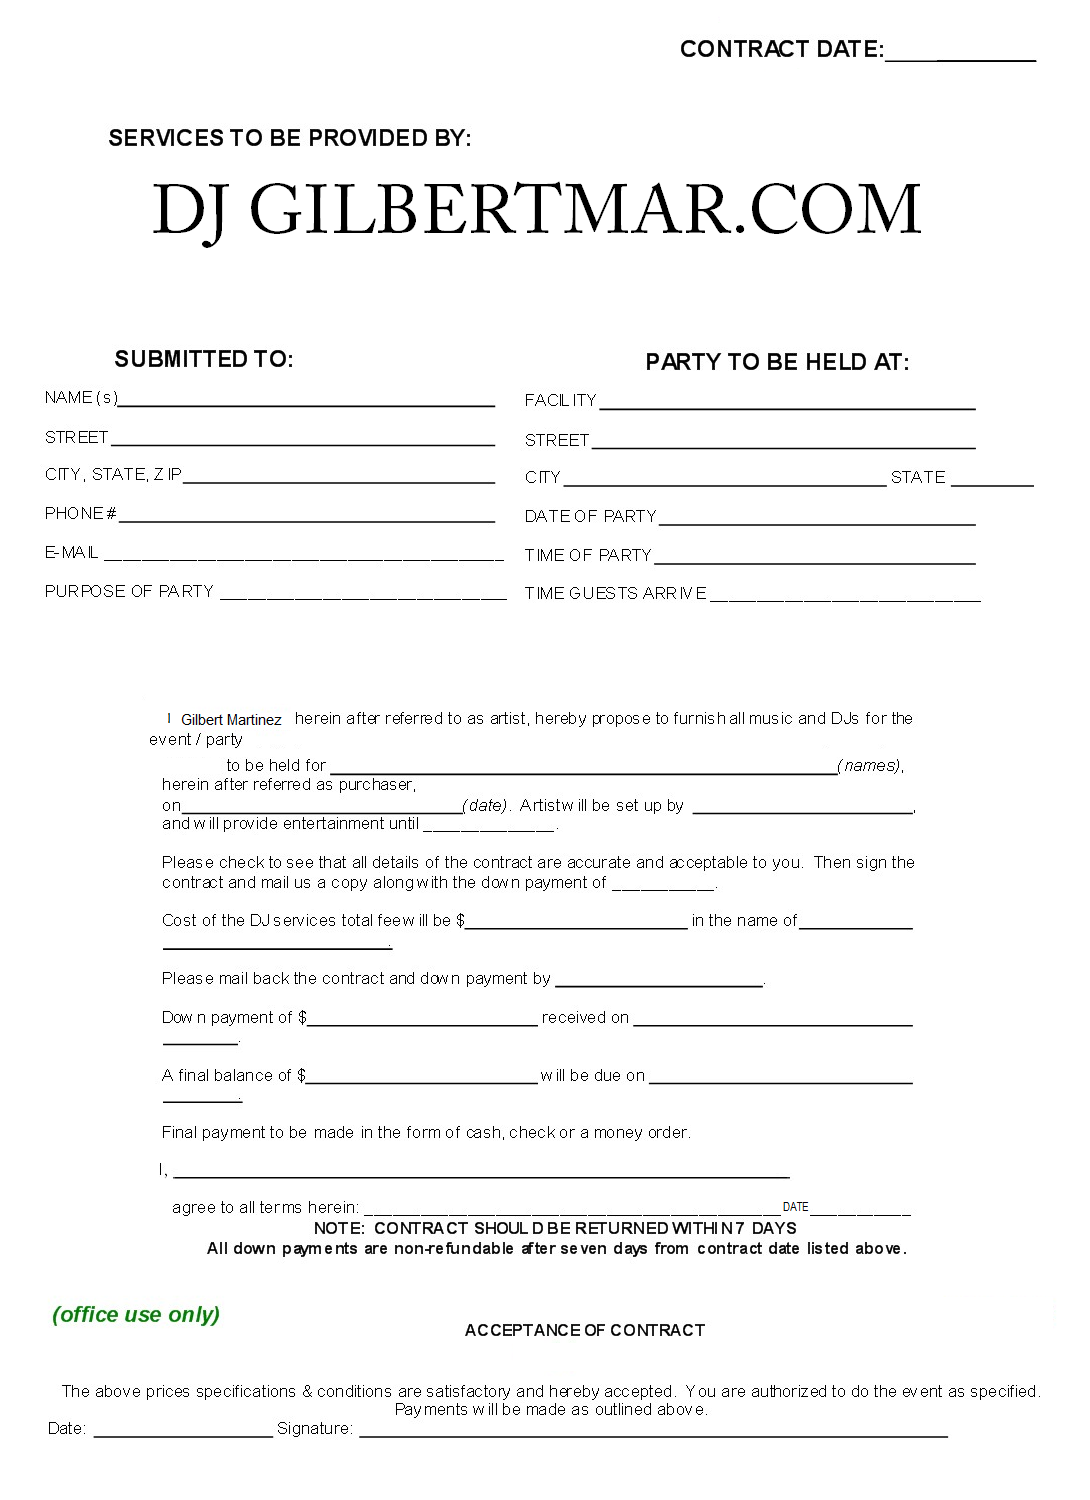 Sample Dj Contract Agreement Free Printable Documents